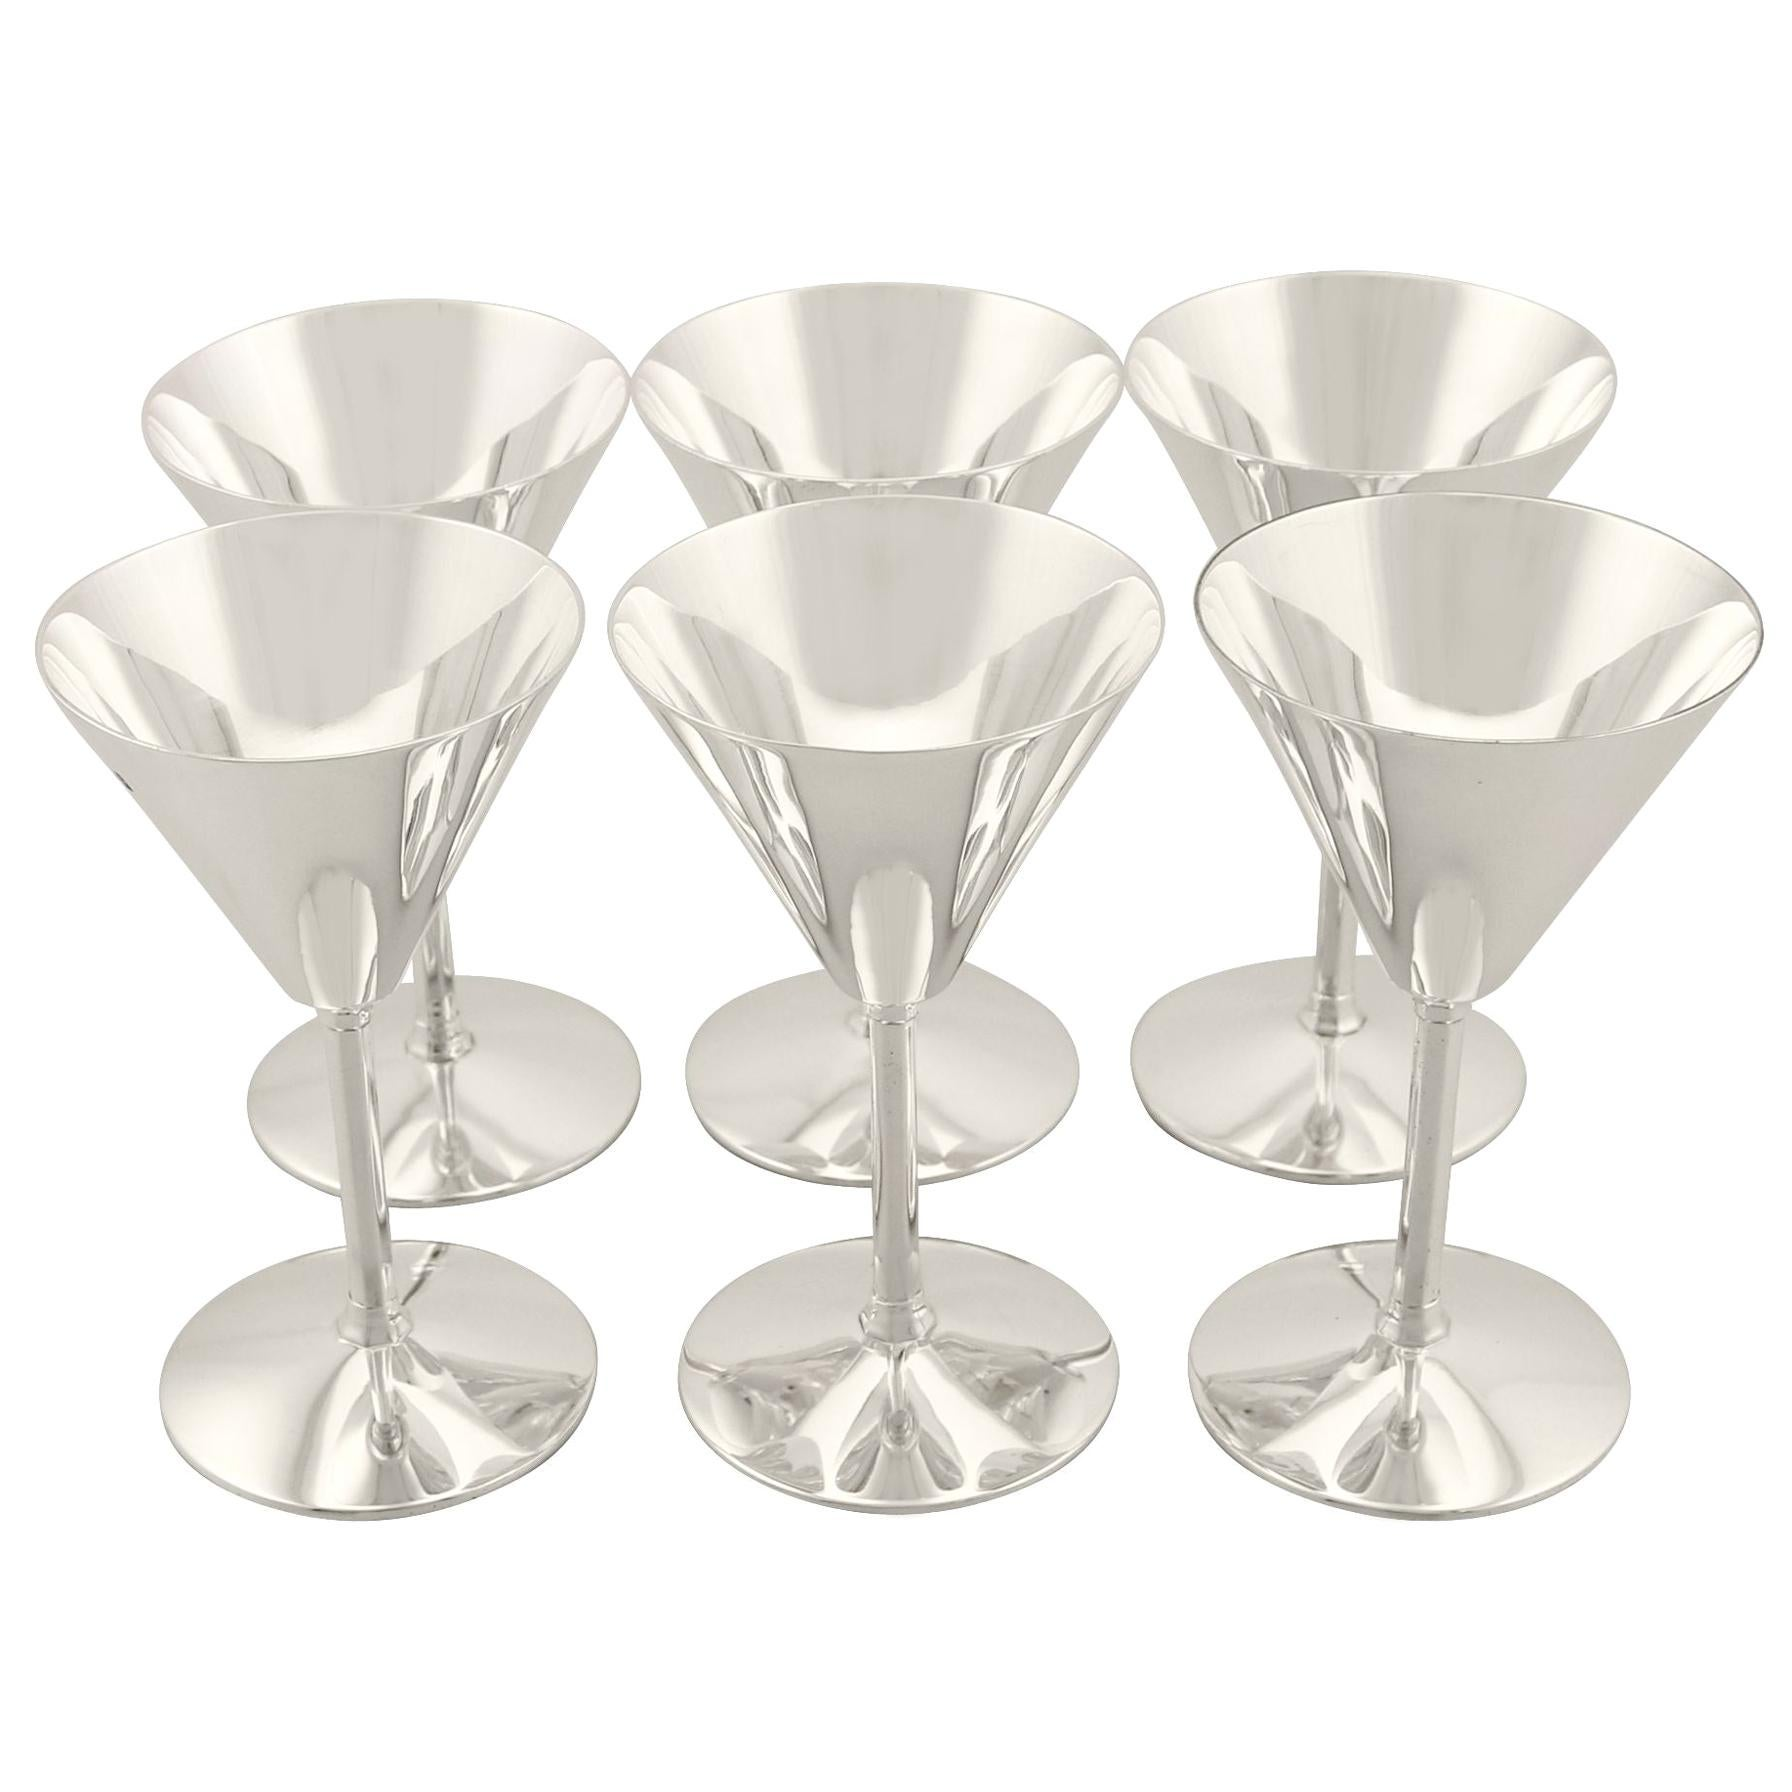 Sterling Silver Cocktail Glasses Set of Six Art Deco Style